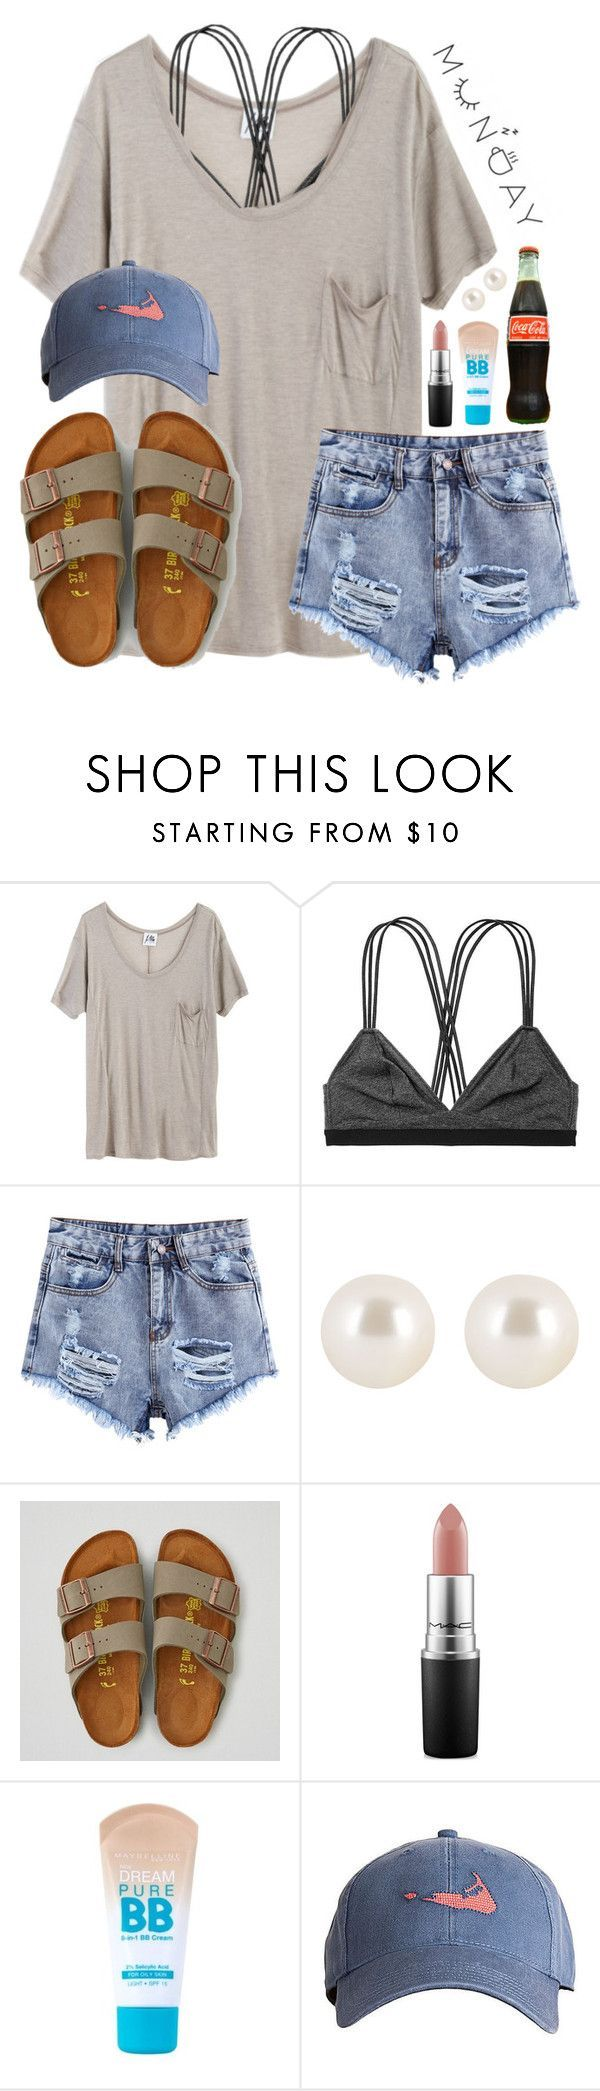 quot;Read dquot; by lydia-hh #10084; liked on Polyvore featuring Mlle Mademoiselle, Victoriaapos;s Secret, Henri Bendel, American Eagle Outfitters, MAC Cosmetics, Maybelline and Harding-Lane